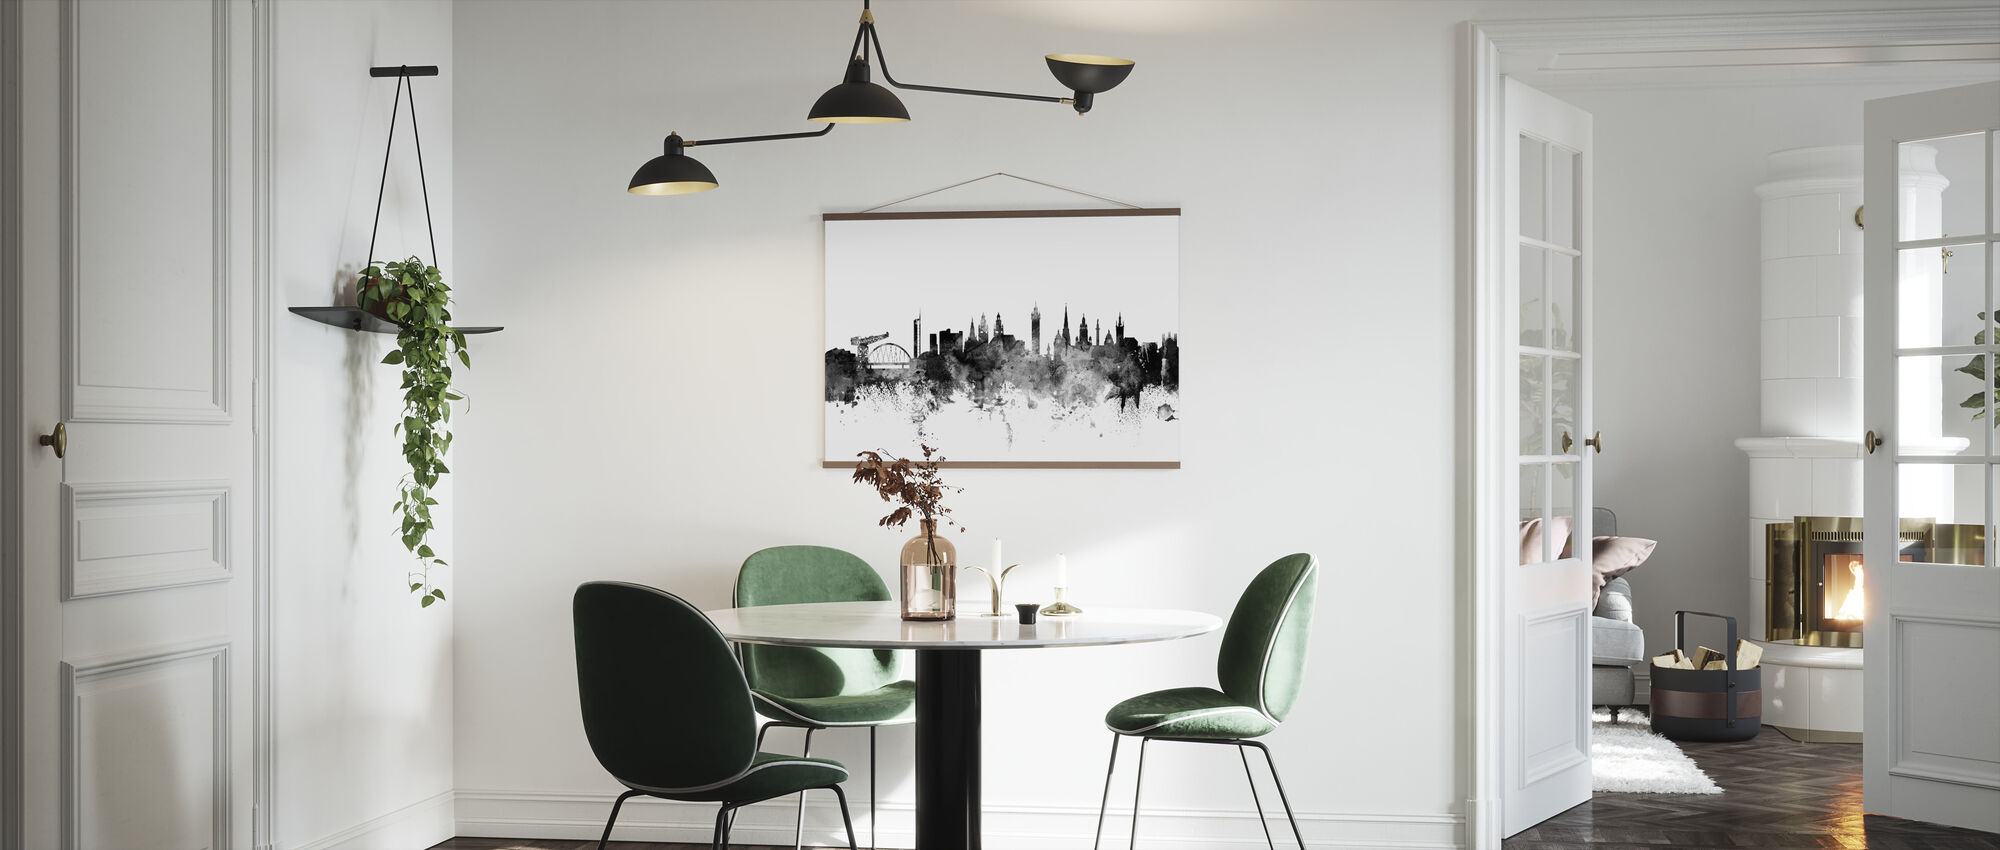 Glasgow Scotland Skyline Black - Poster - Kitchen